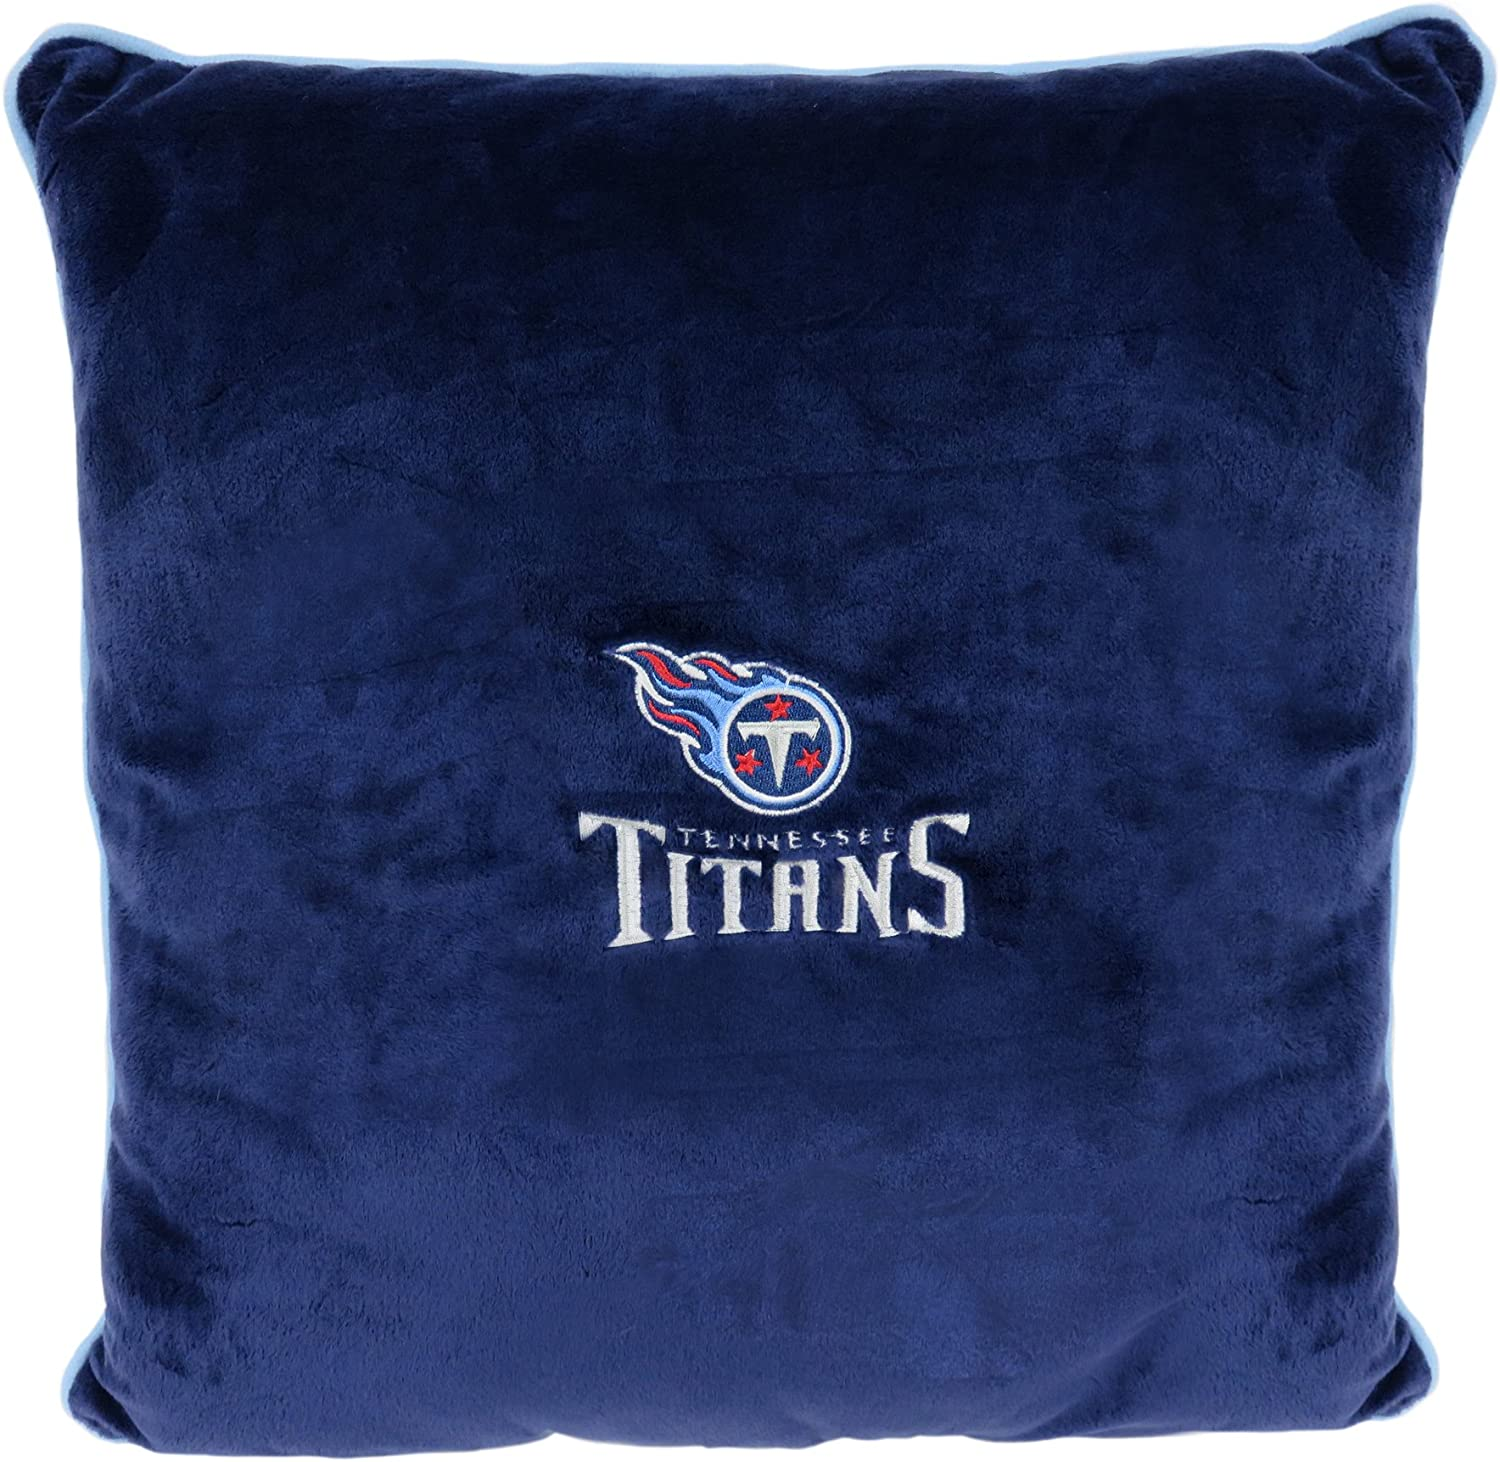 QUALITY PILLOW Pets First NFL THROW Sale special price TITANS - TENNESSEE Sale SALE% OFF